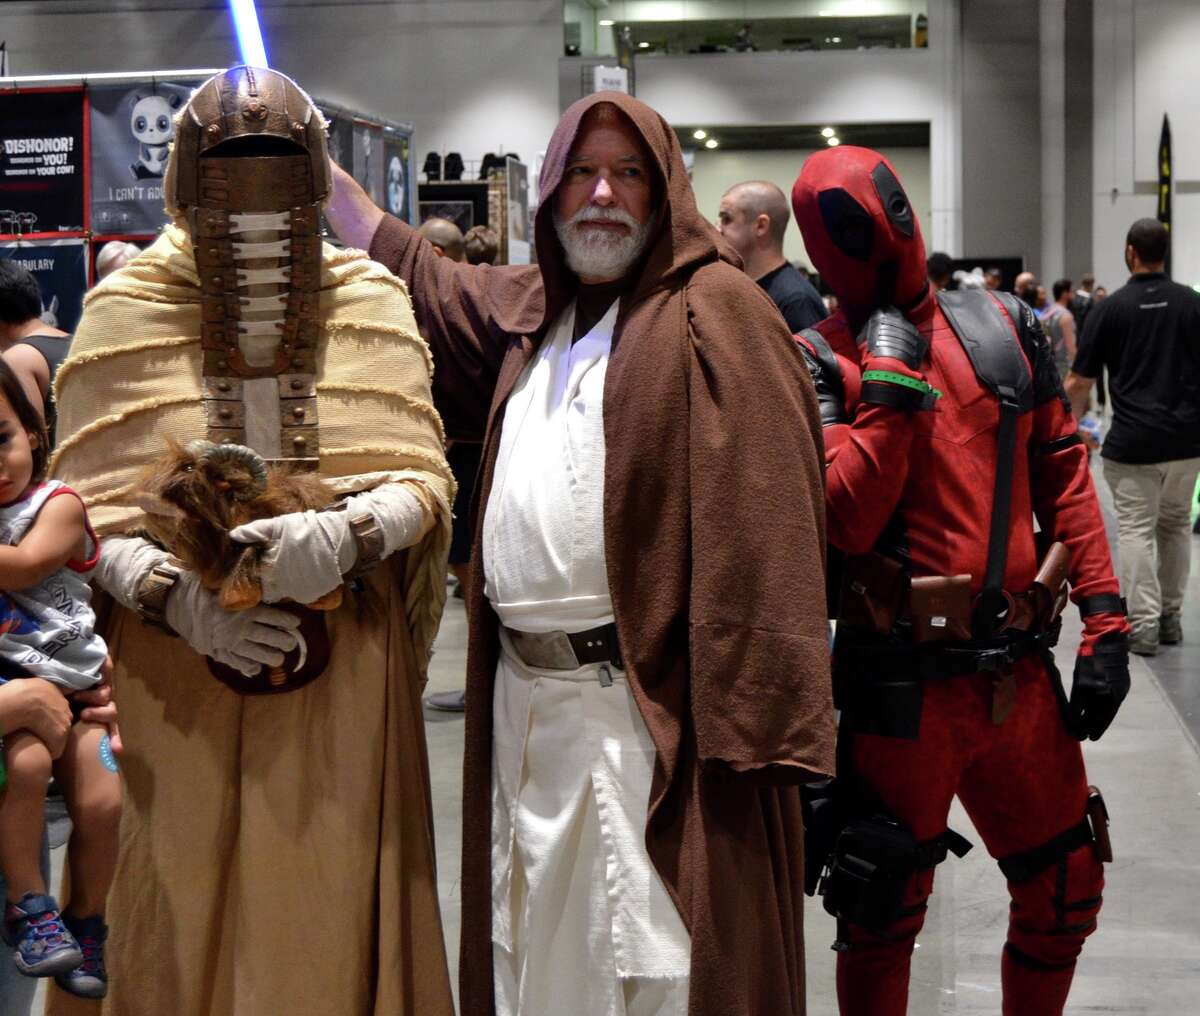 Deadpool photobombs a Tuscan Raider and Obi-Wan Kenobi at the Silicon Valley Comic Con in San Jose, California on Saturday, August 17, 2019.